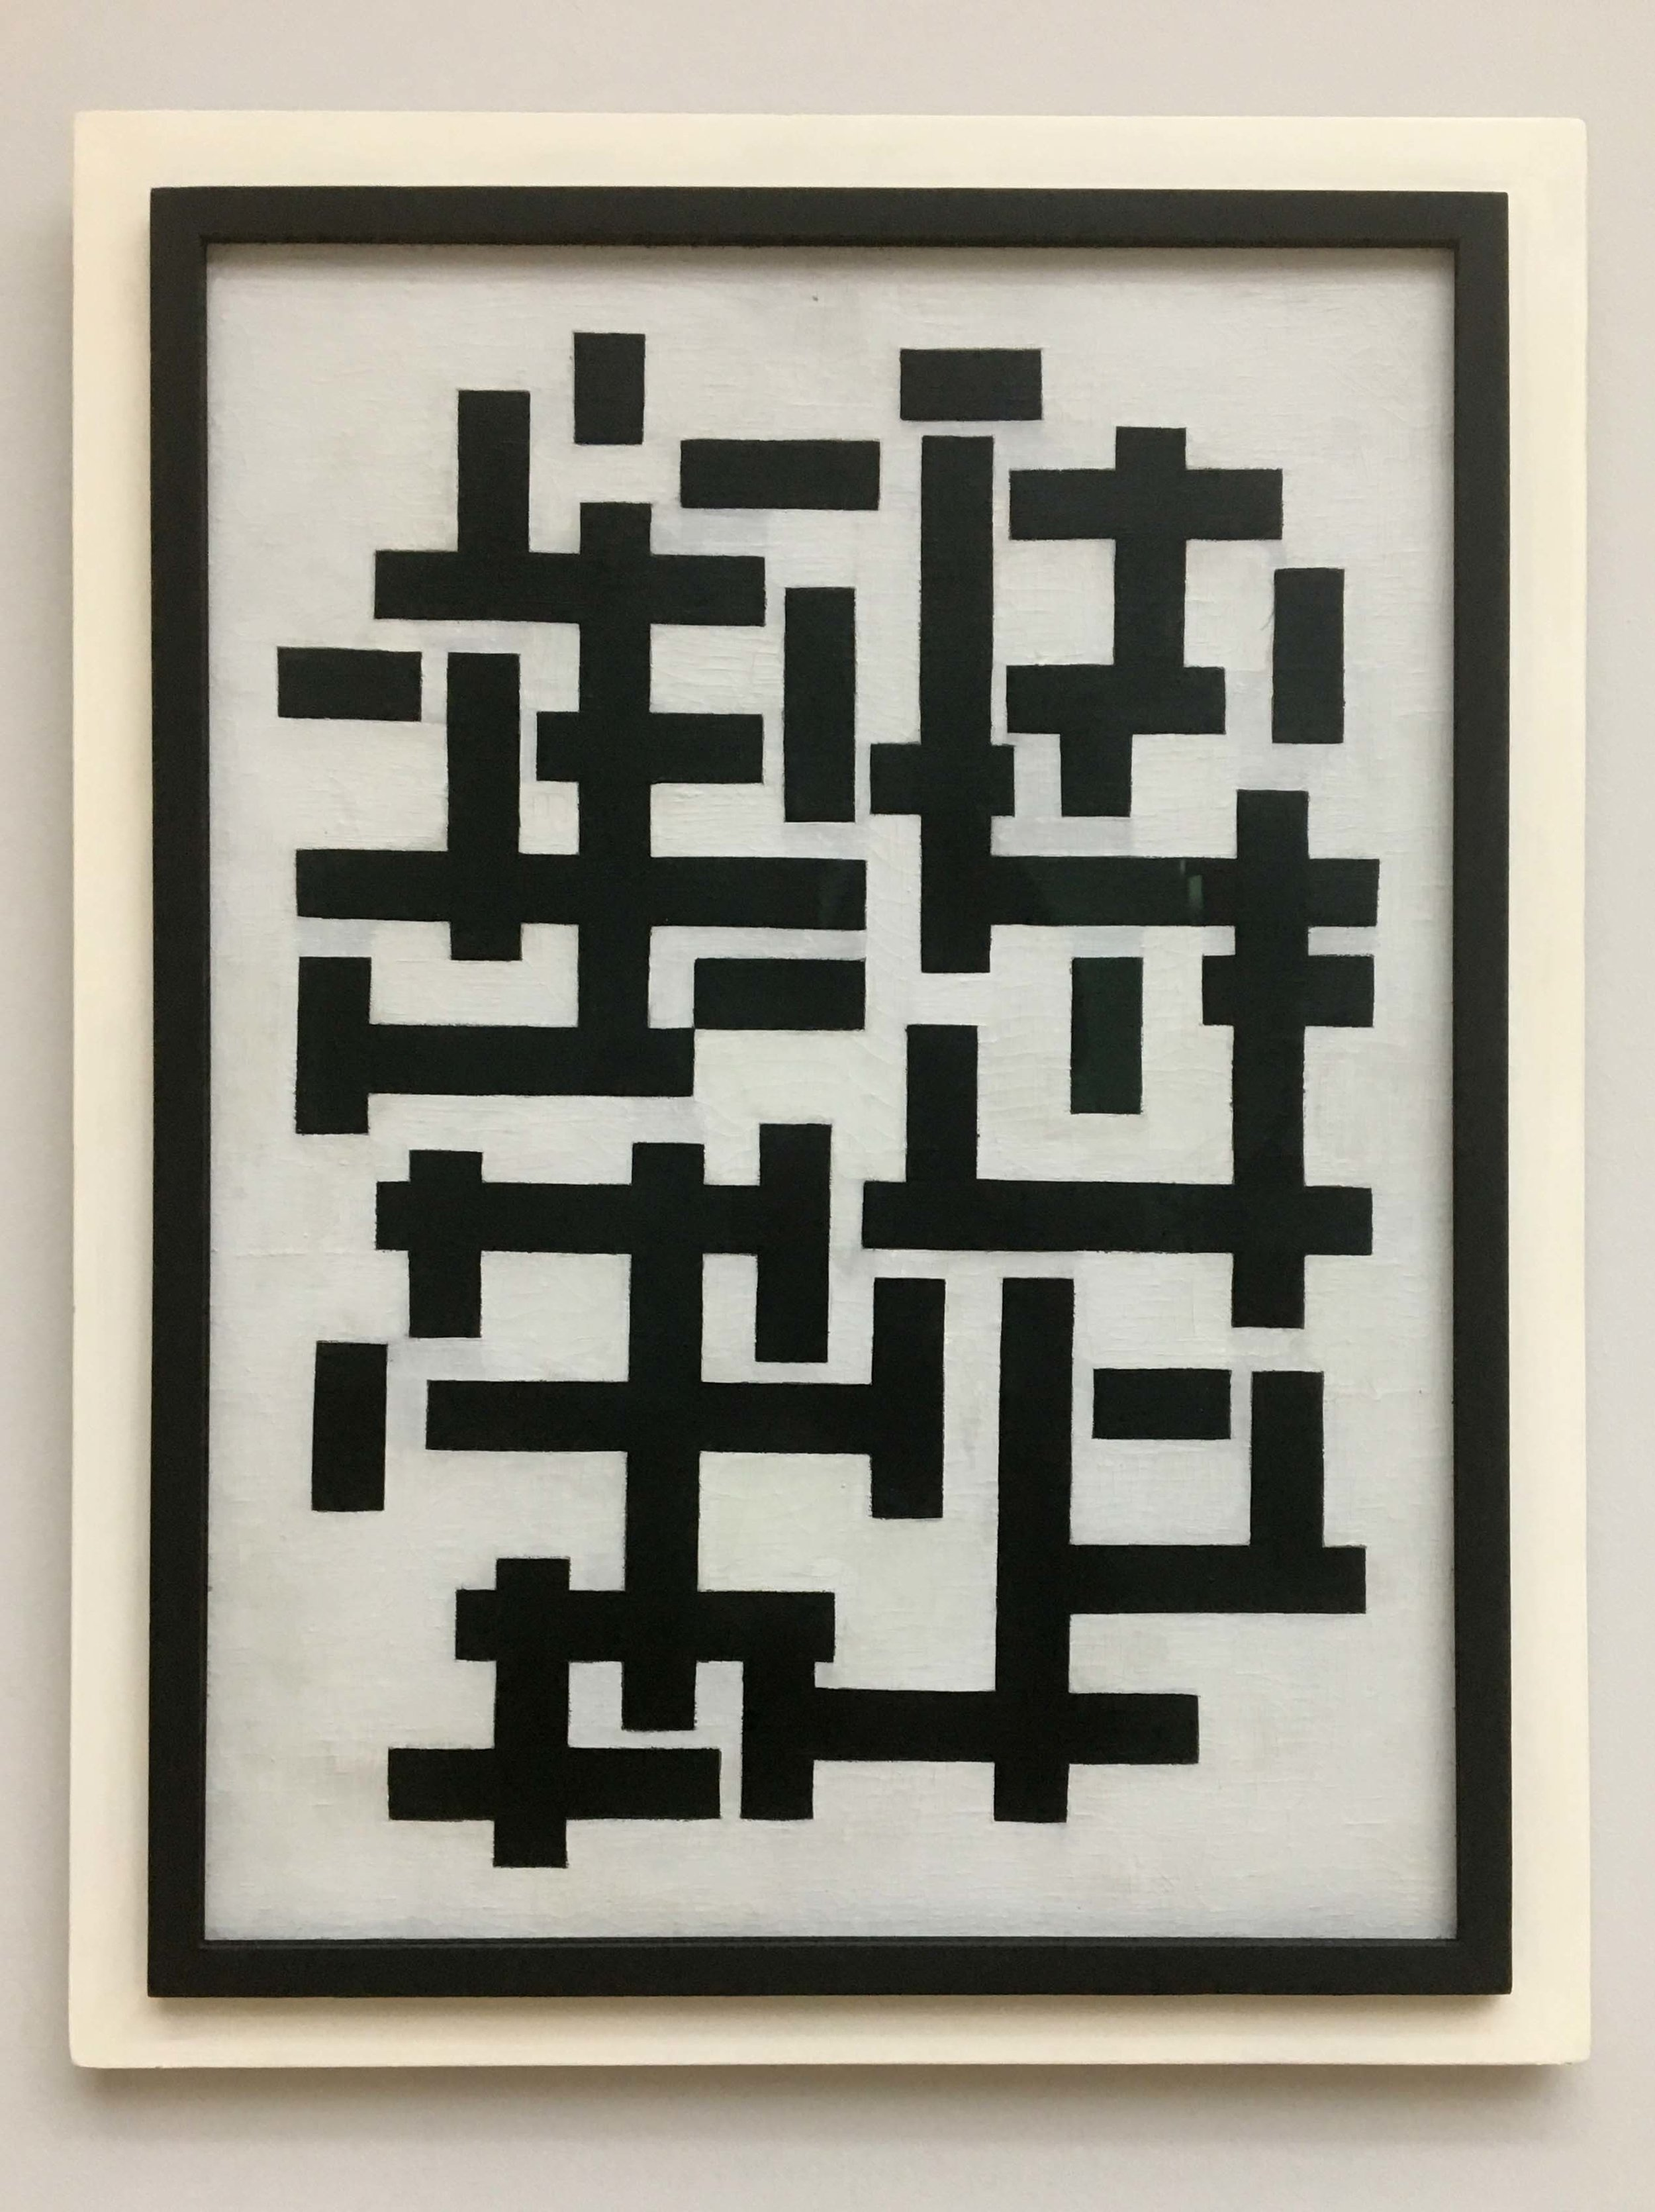 Theo van Doesburg, Composition XII in black and white, 1918